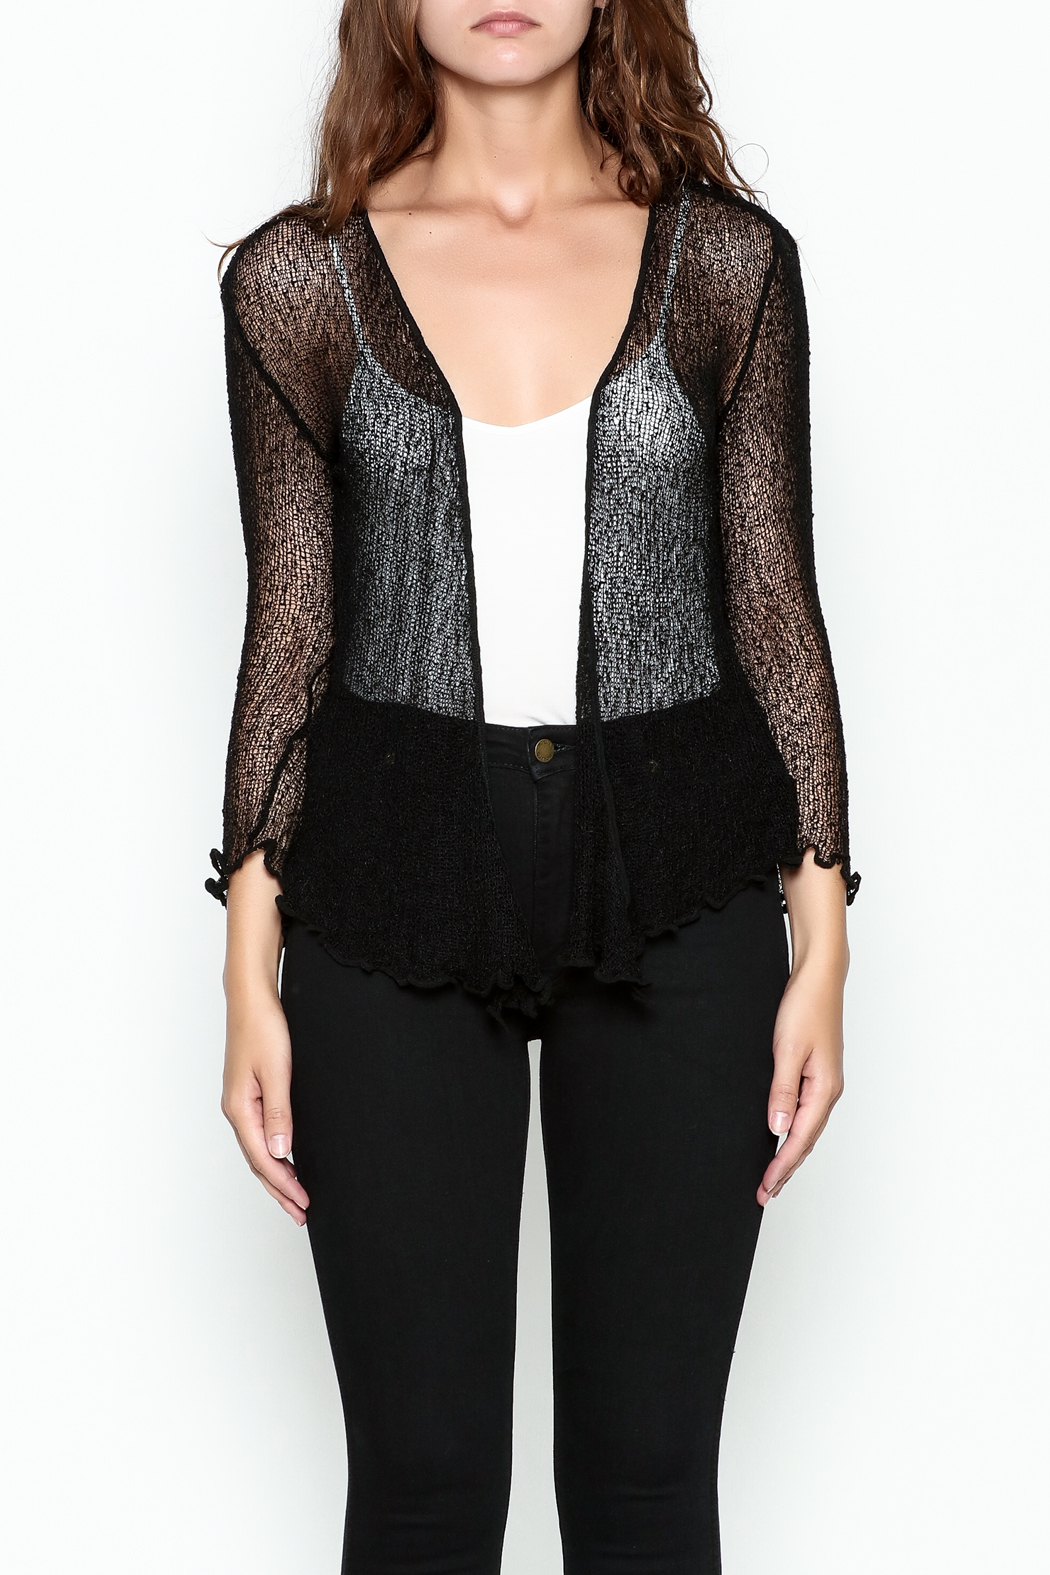 Made on Earth Black Shrug - Main Image